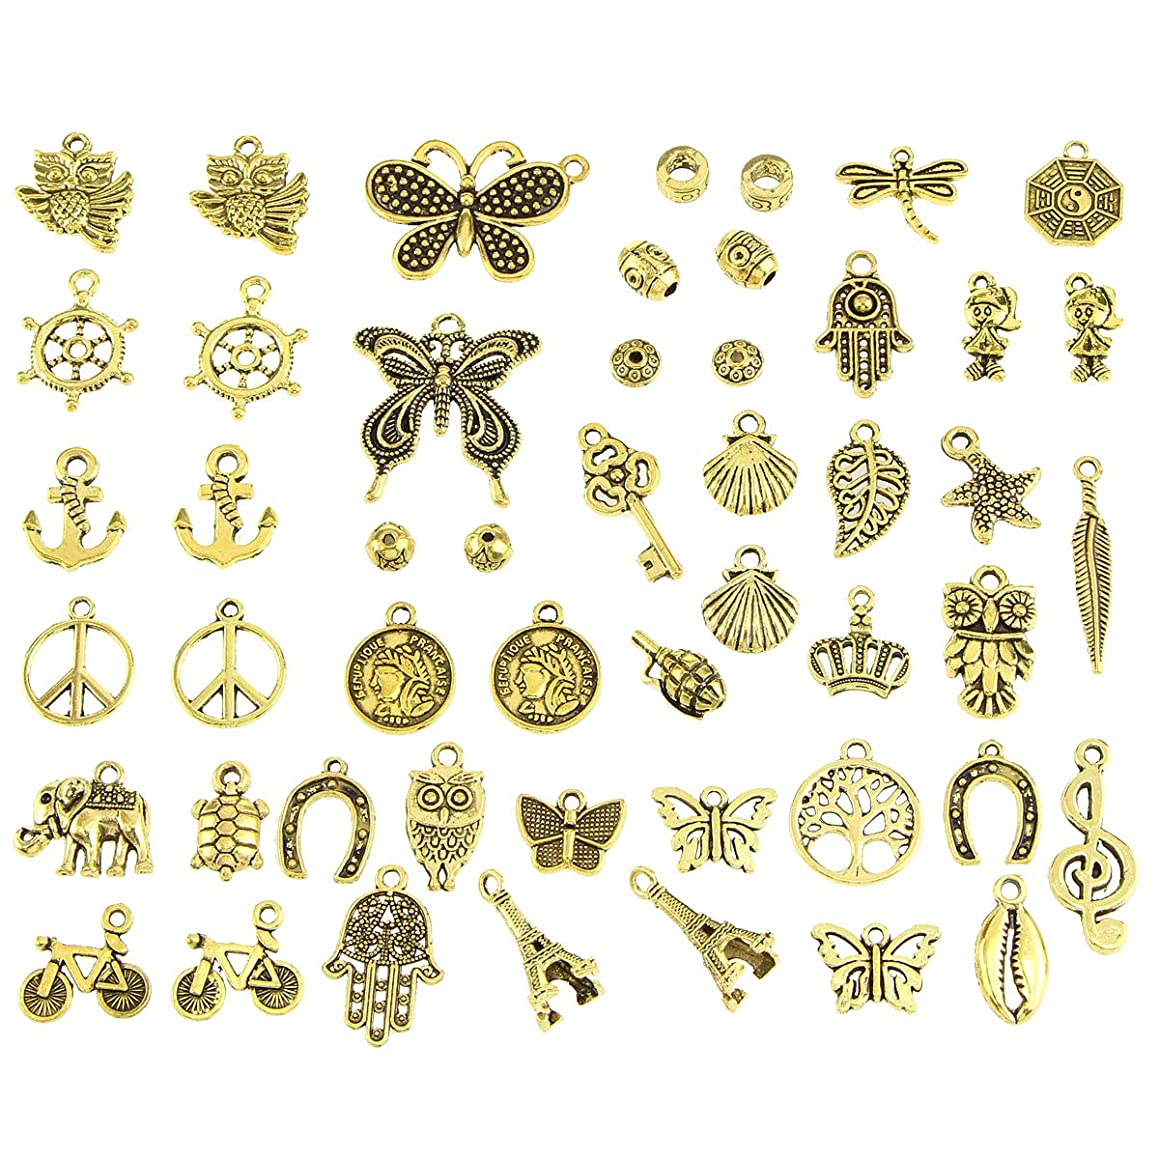 50pcs Charms for Jewelry Making,Dainty Tibetan Vintage Charms Pendants Crafting Accessories for Necklace Bracelet Ankle Jewelry DIY Making